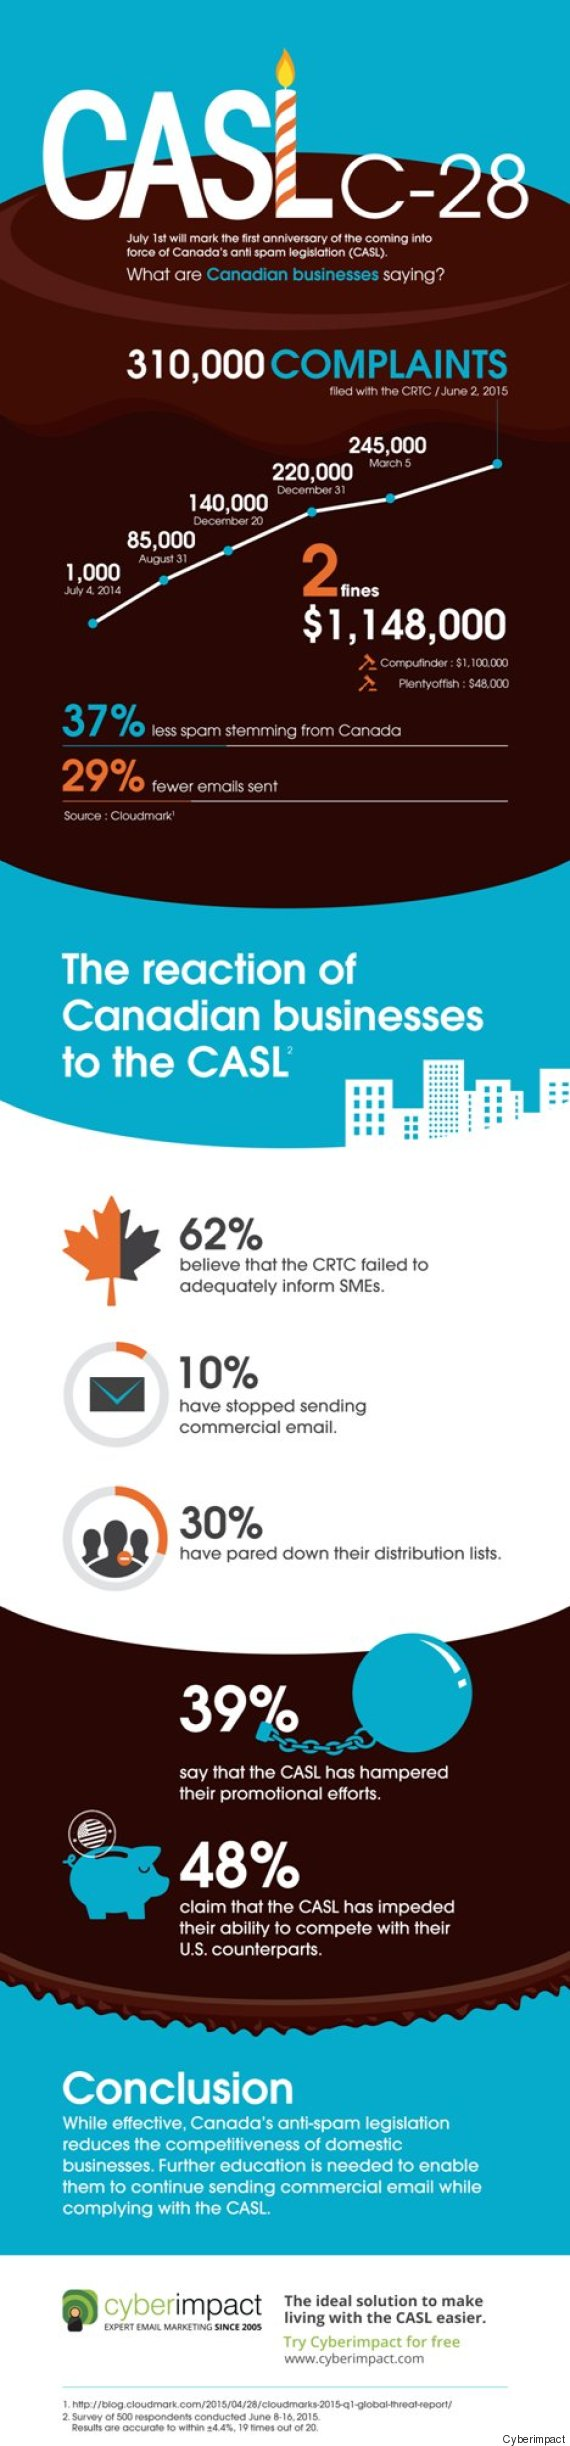 casl infographic